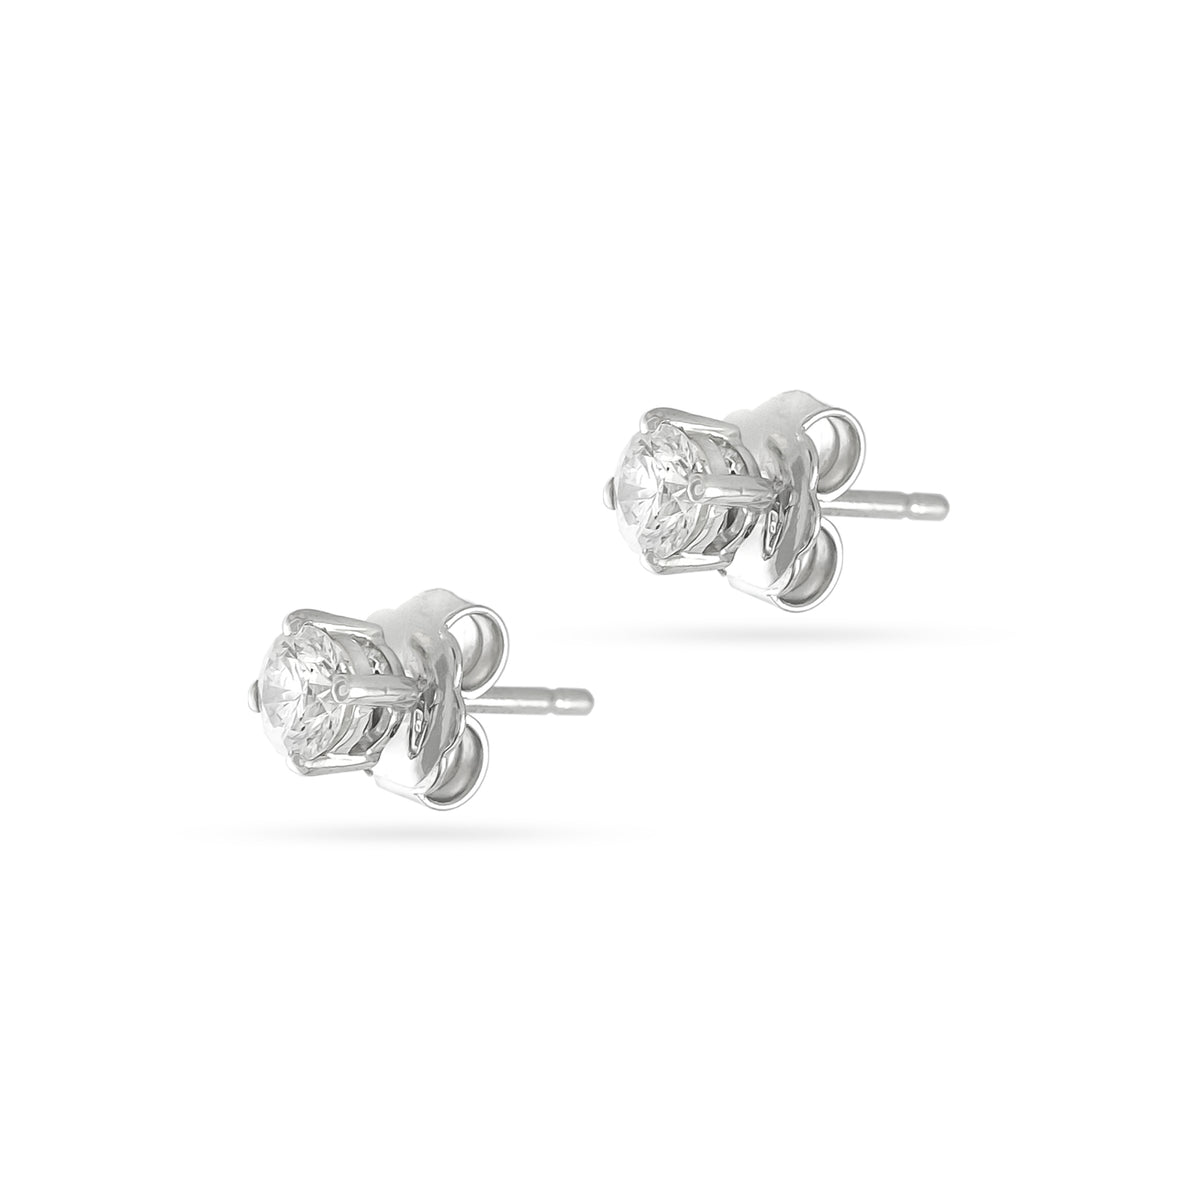 0.25ct 18ct White Gold Diamond Stud Earrings